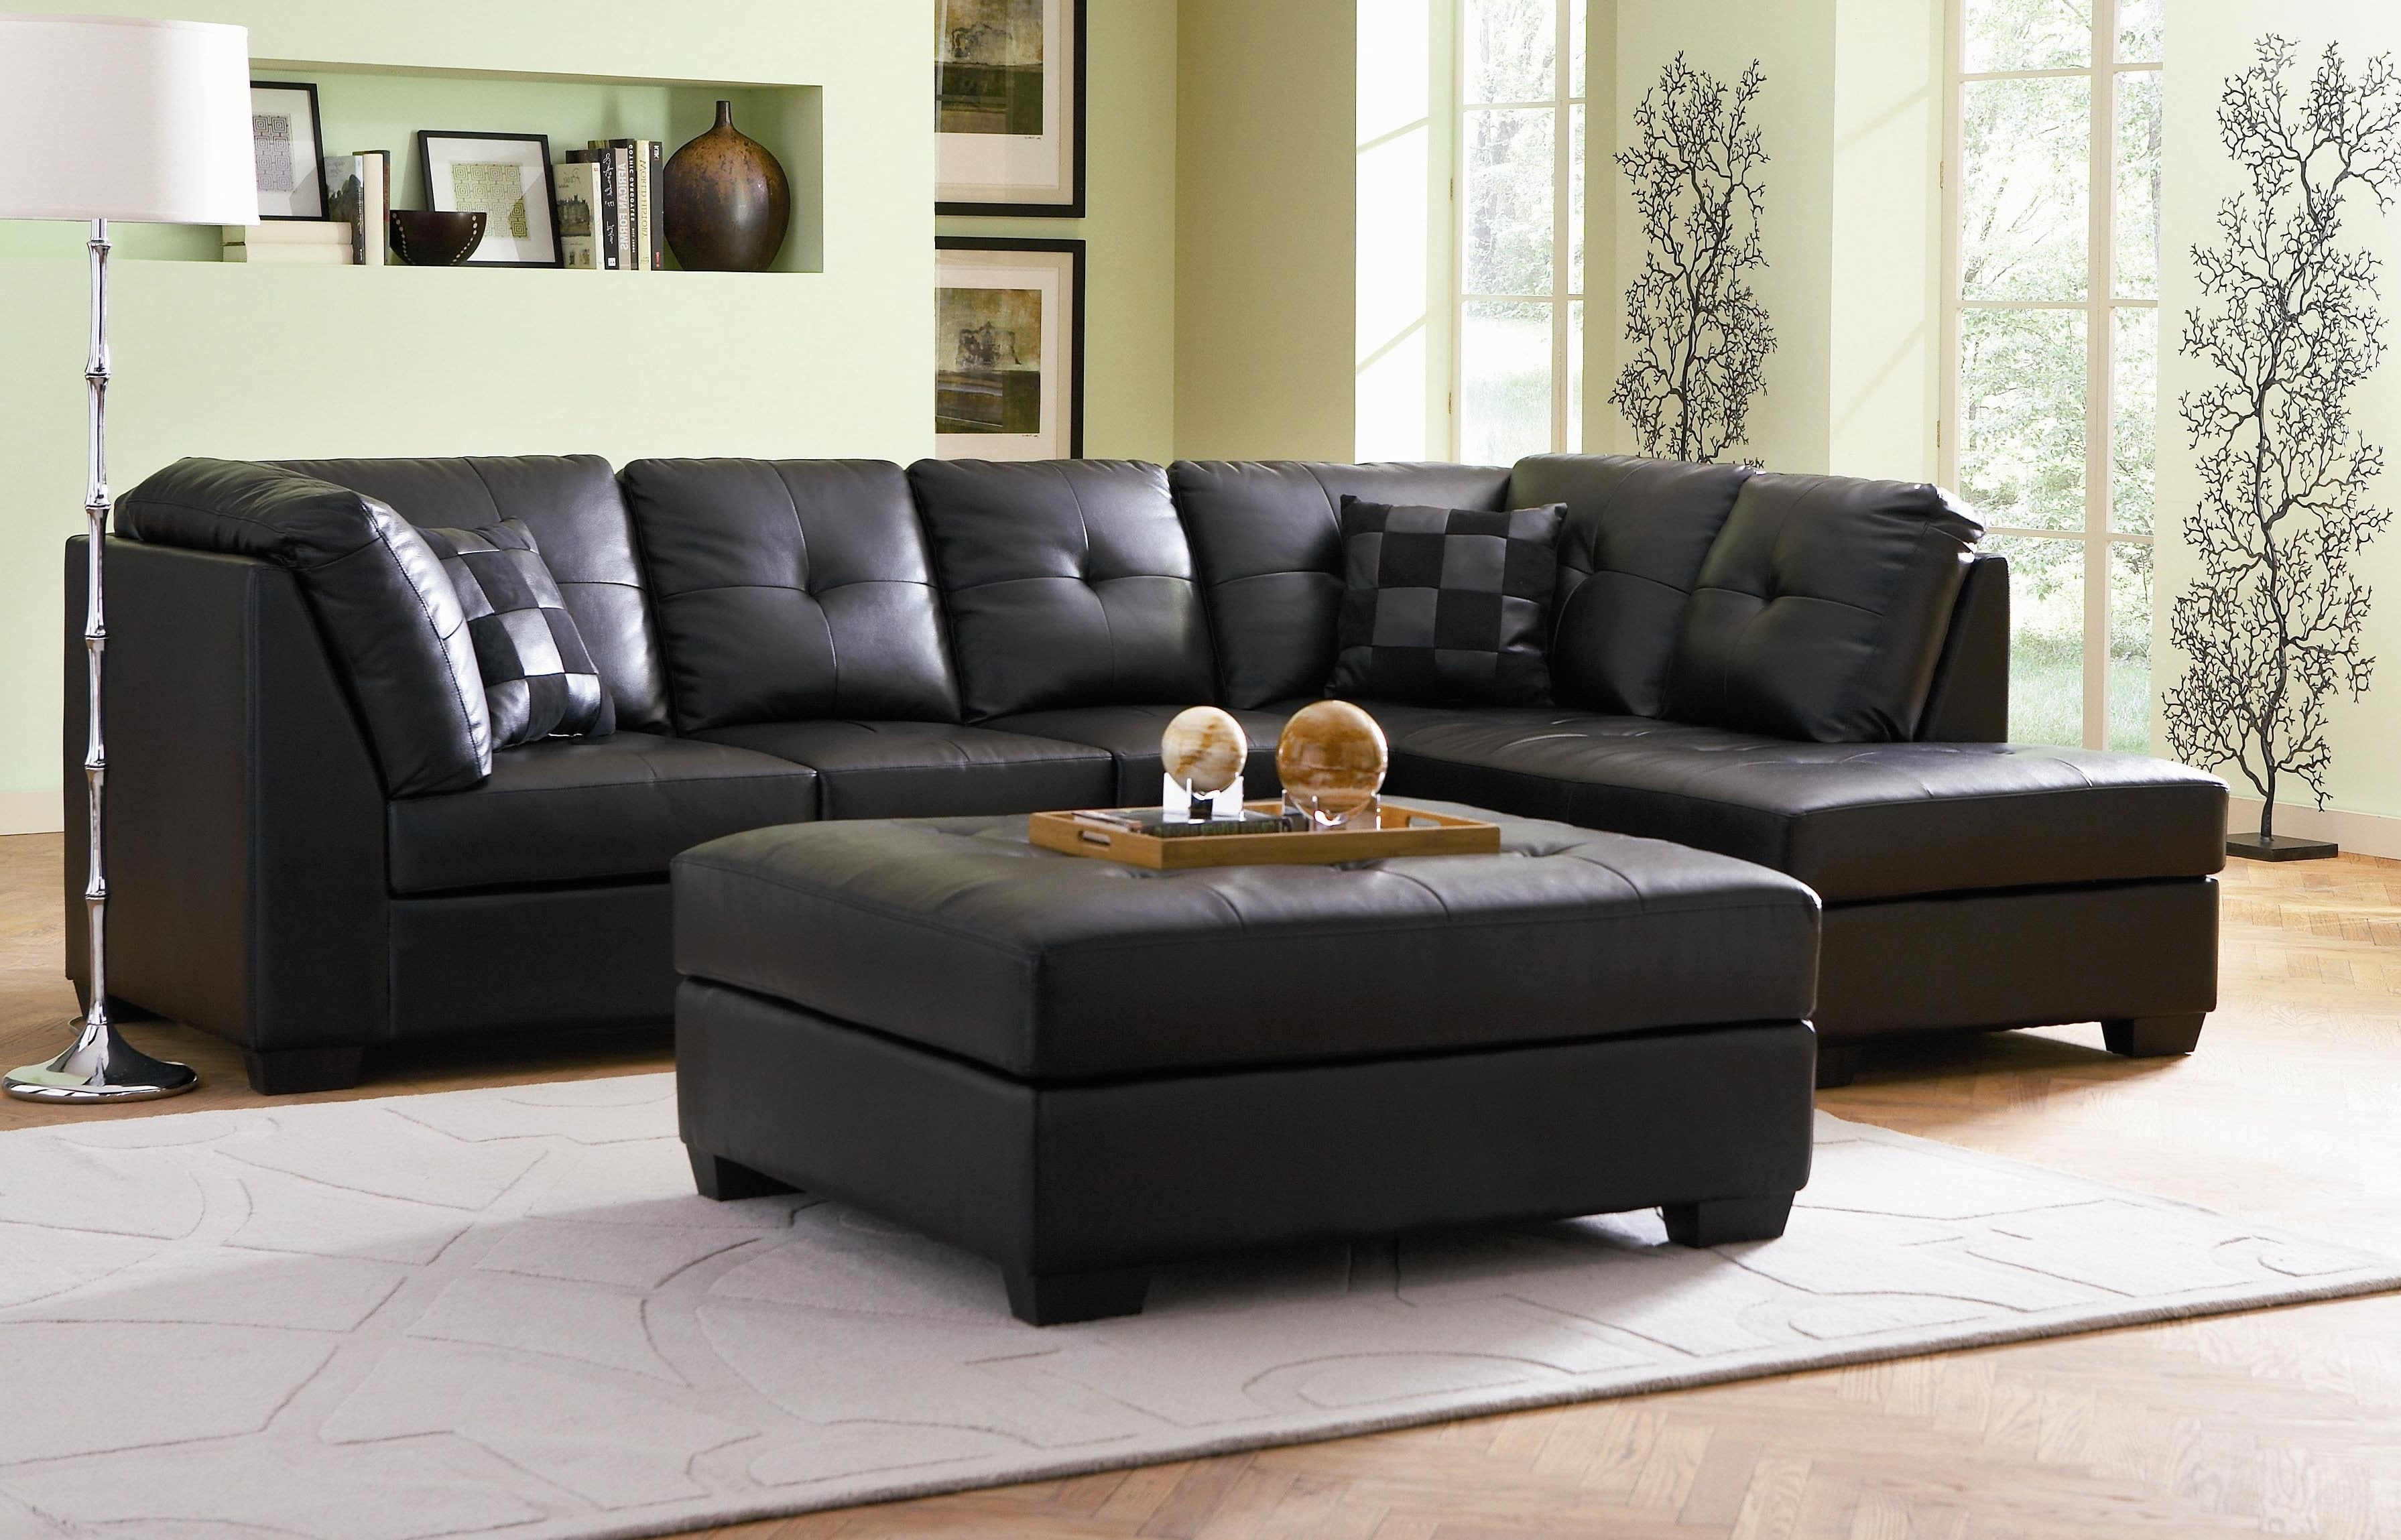 Trendy Photos Sectional Sofas Jacksonville Fl – Buildsimplehome For Jacksonville Fl Sectional Sofas (View 6 of 15)